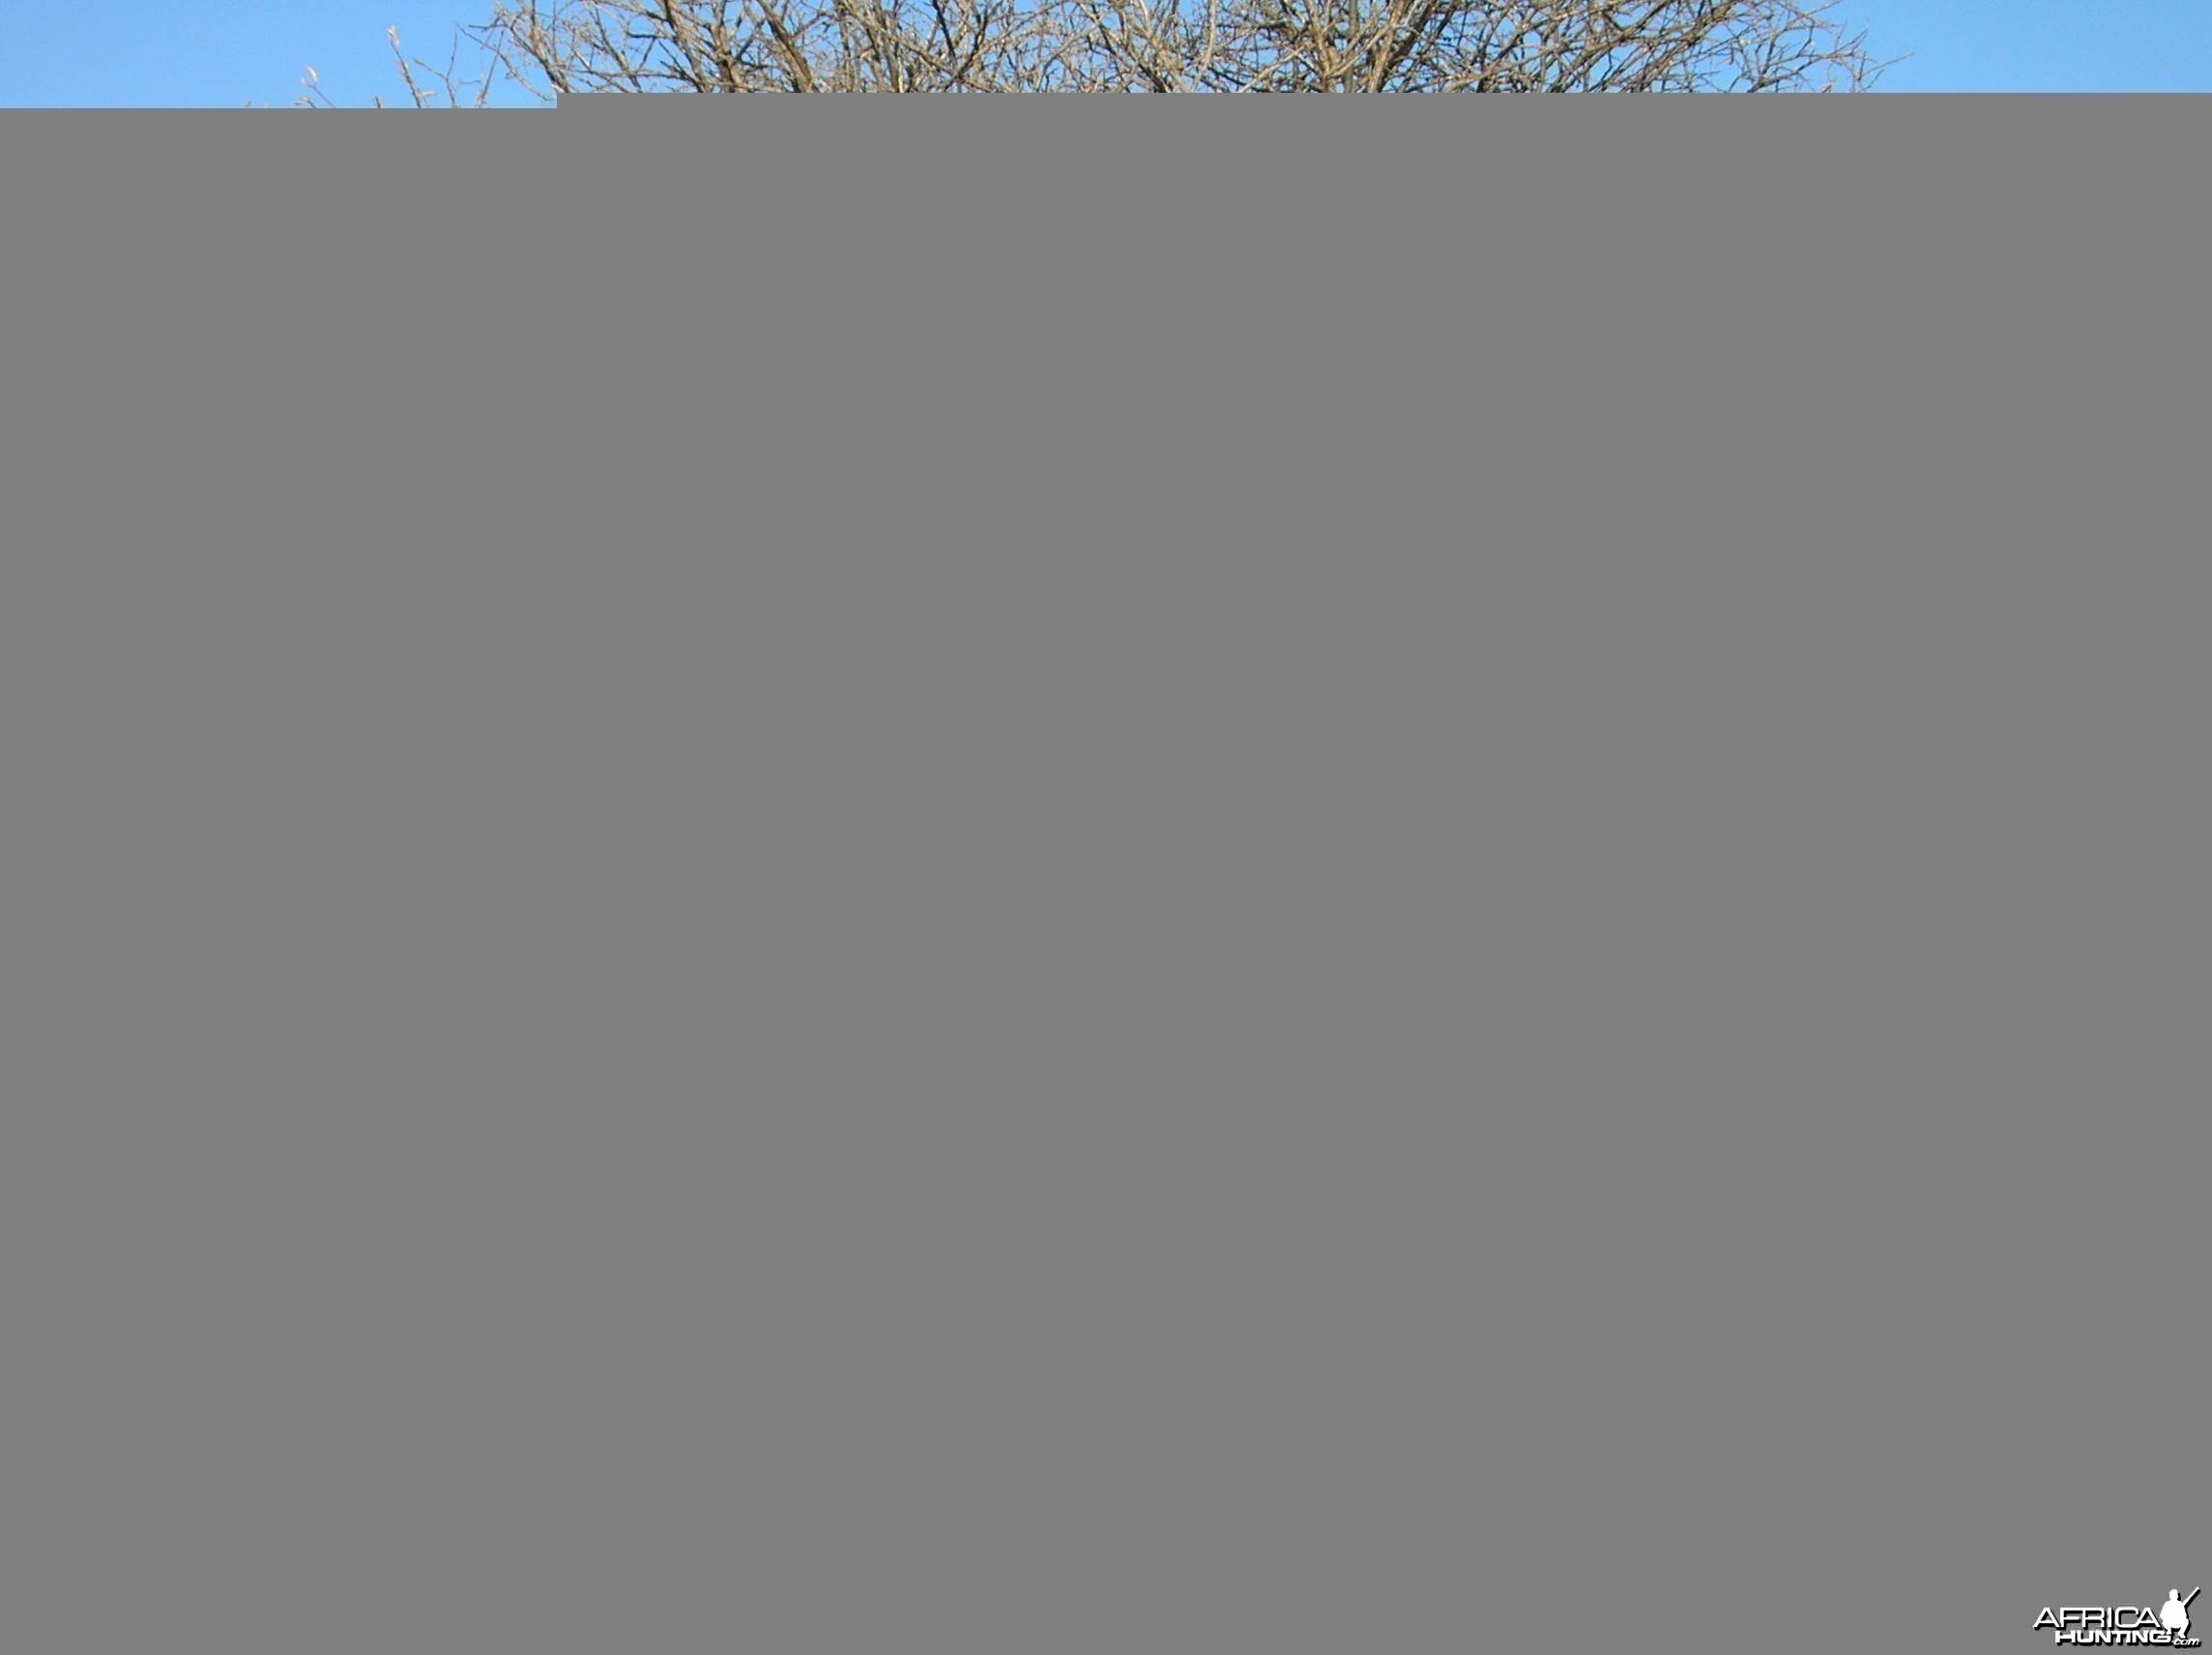 Bowhunting Blue Wildebeest in Namibia